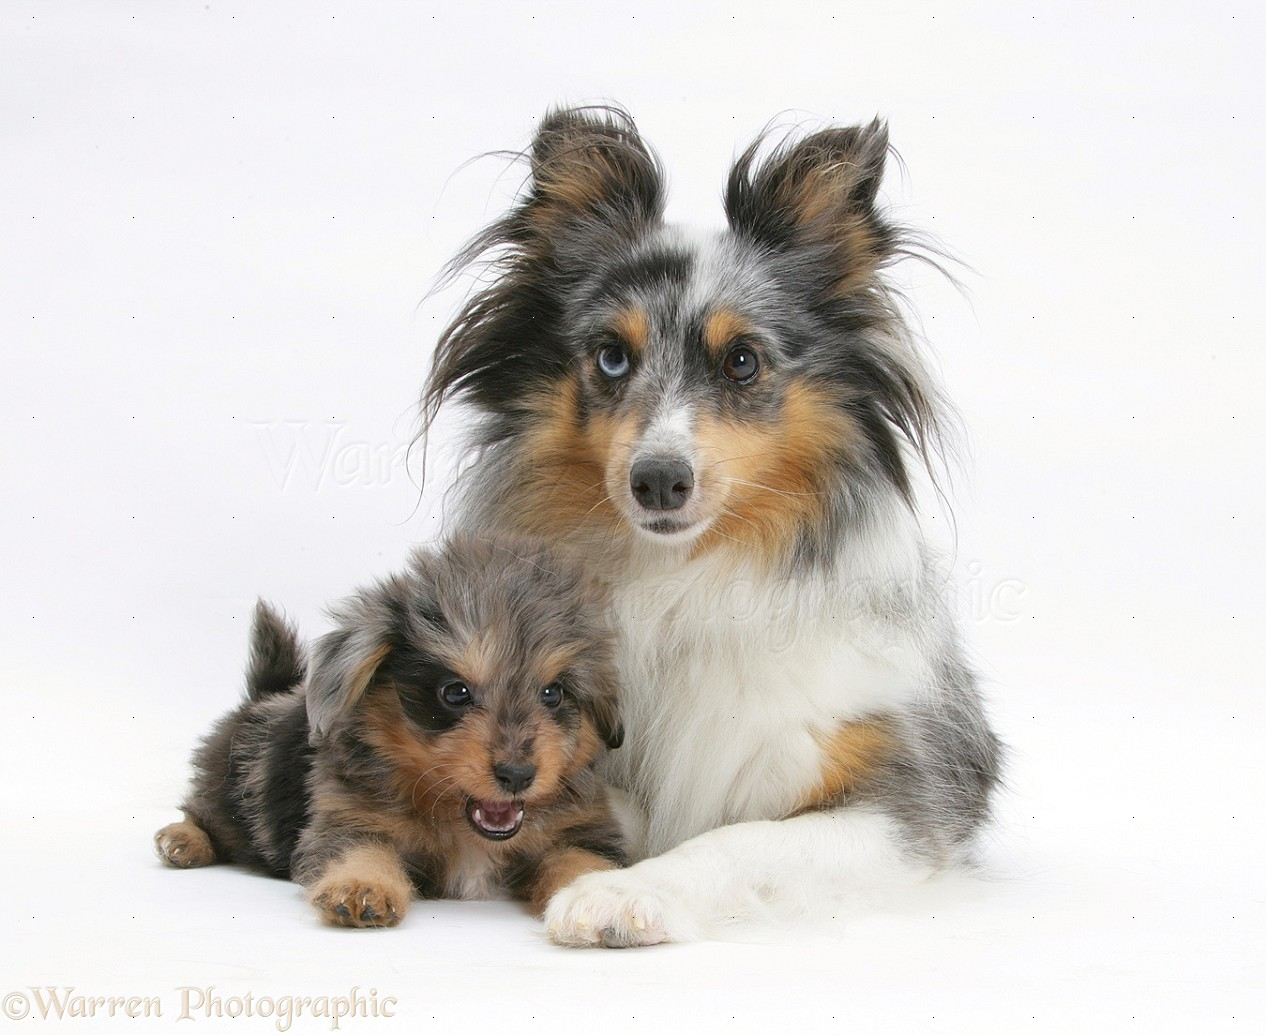 Dogs Sheltie And Sheltie X Poodle Pup Photo Wp23092